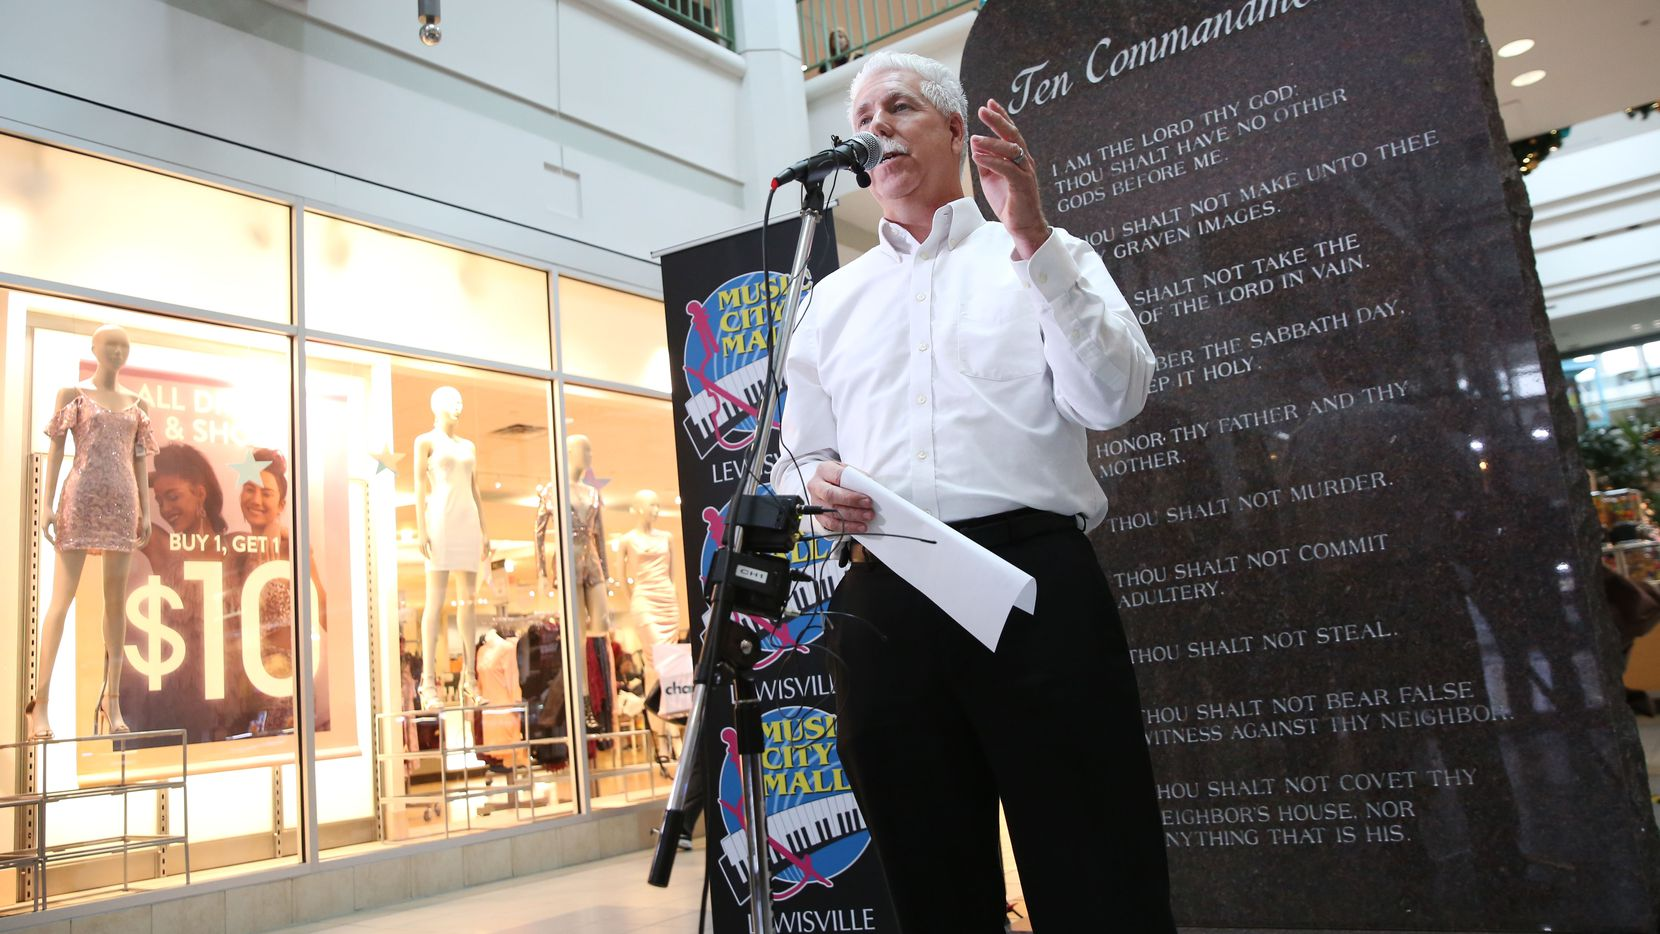 Richard Morton, general manager of Music City Mall, speaks during the unveiling of a Ten Commandments monument at the mall in Lewisville, Texas on Friday, Dec. 29, 2017. The Ten Commandments will be featured year-round in the lower level of the mall, while a second stone tablet with two commandments will be displayed on an upper level entrance. (Rose Baca/The Dallas Morning News)